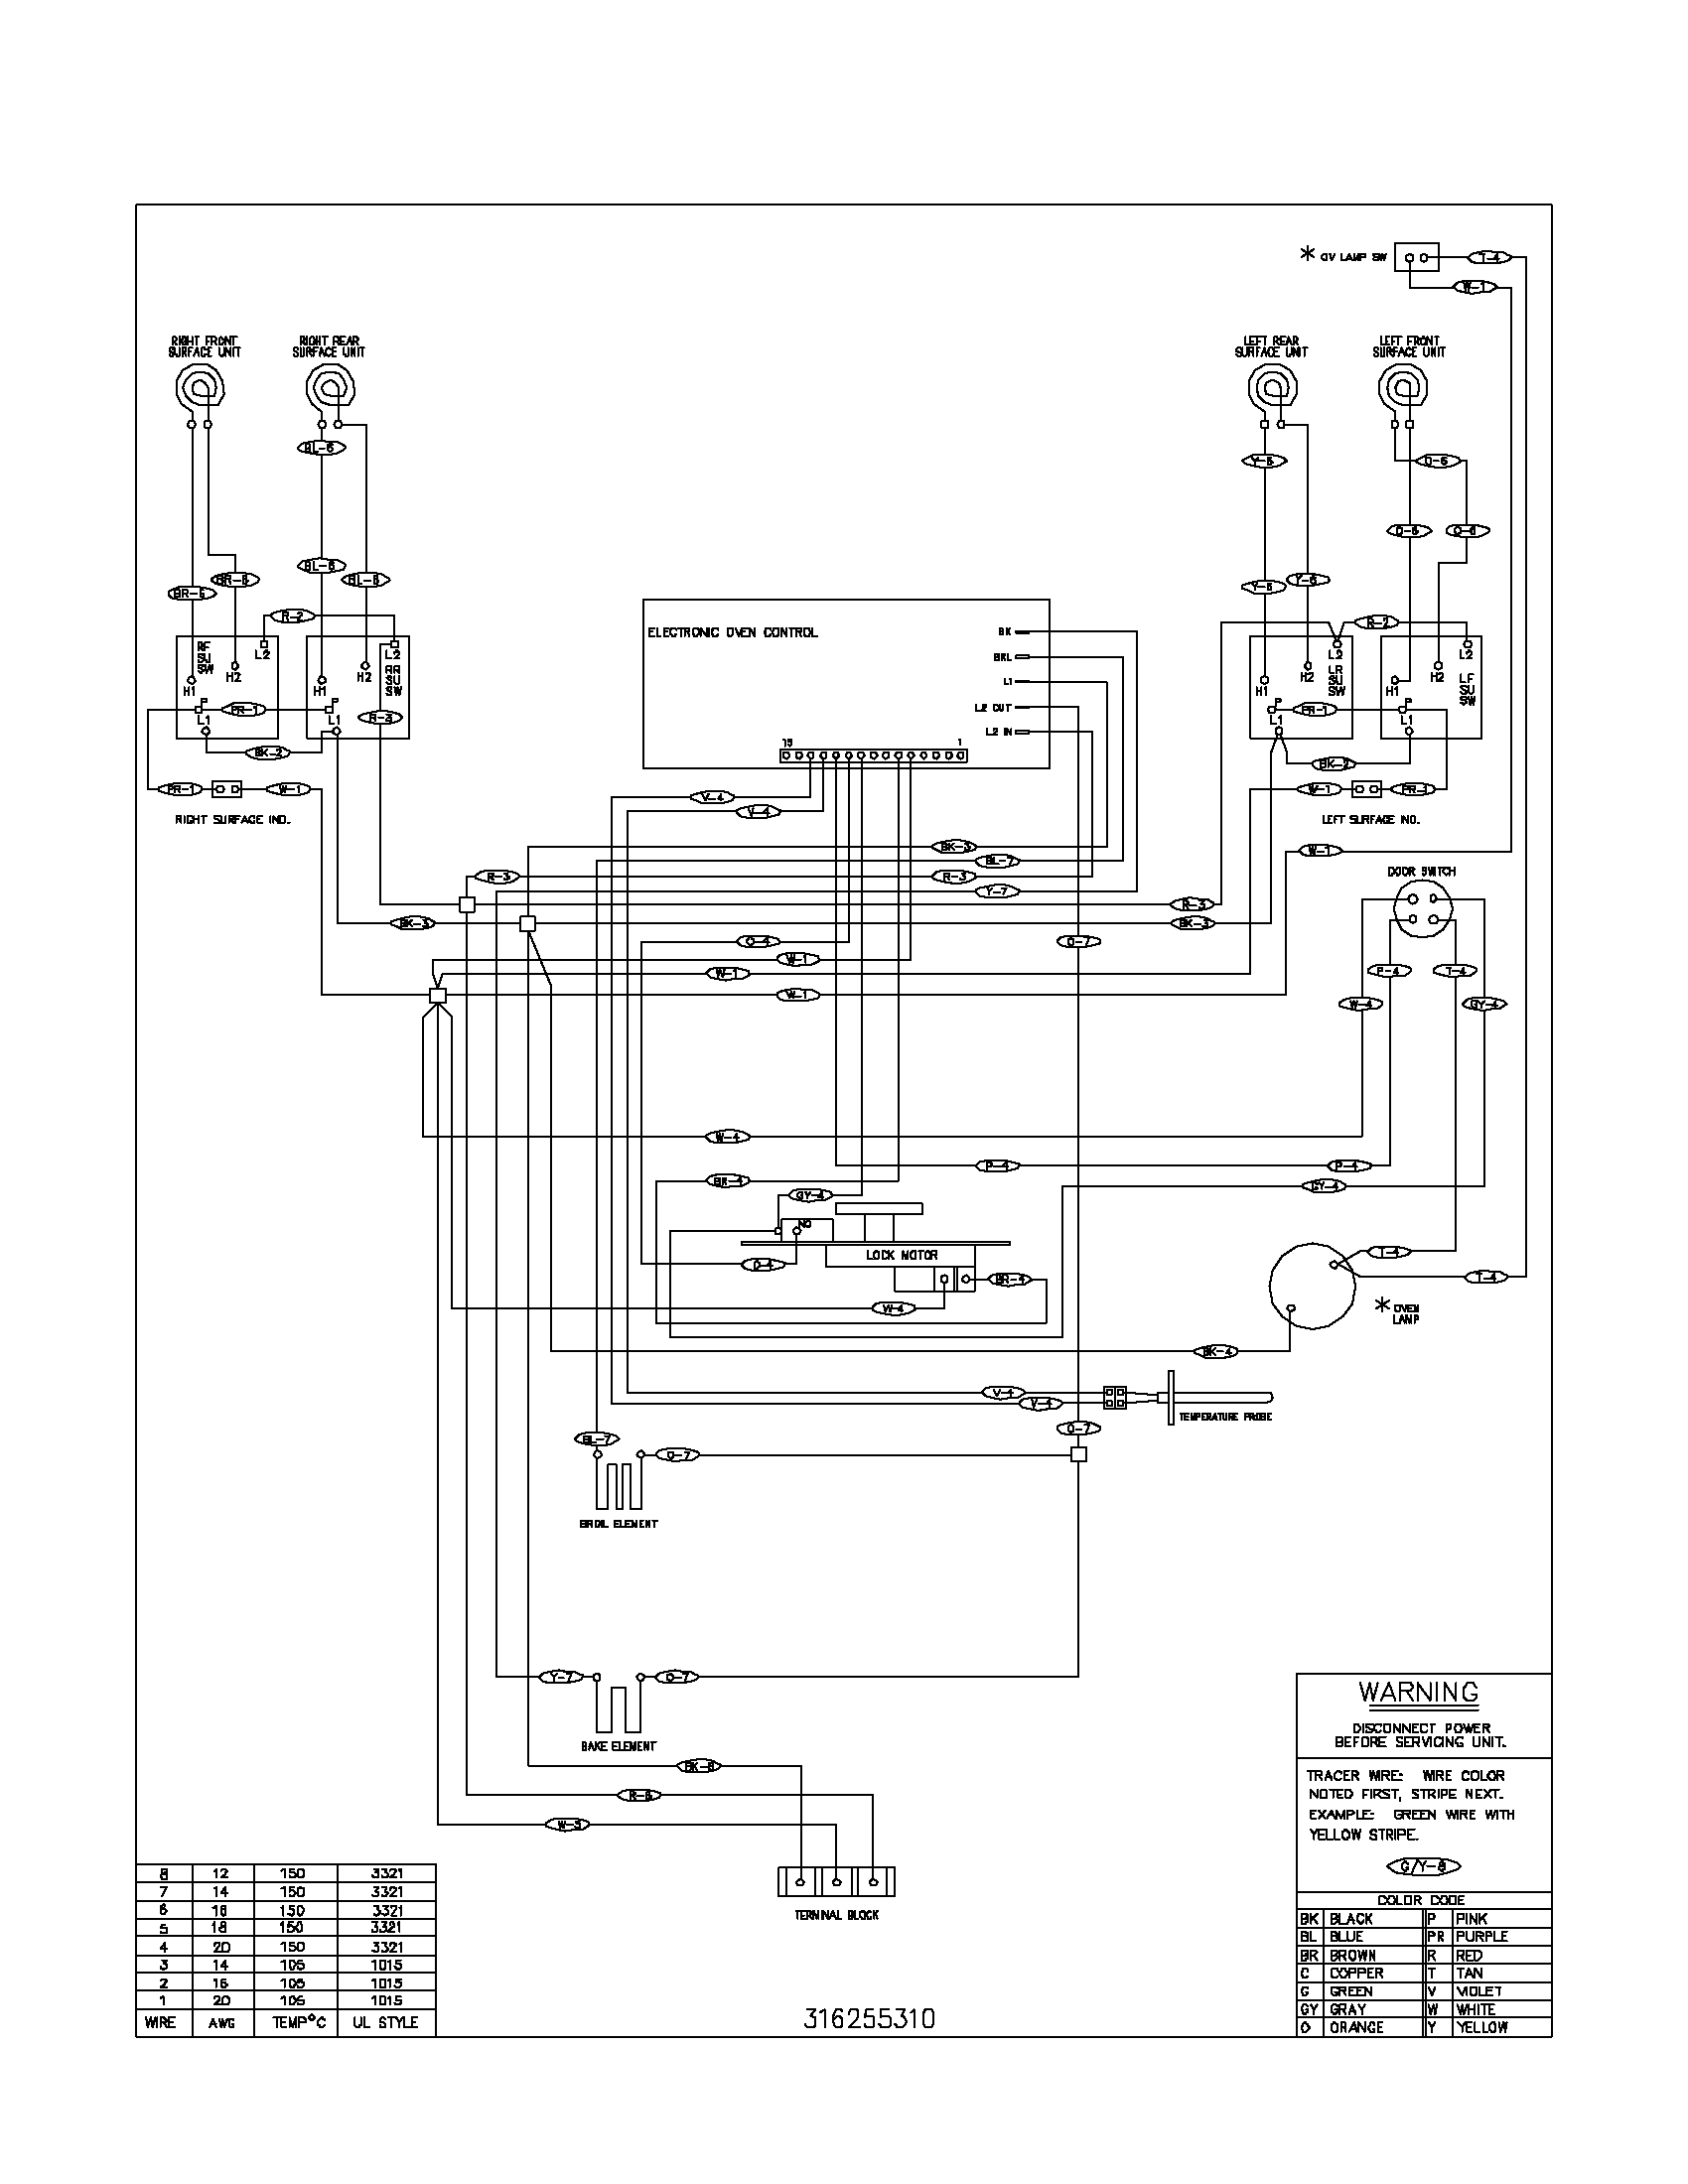 hight resolution of 86 lamborghini wiring diagram